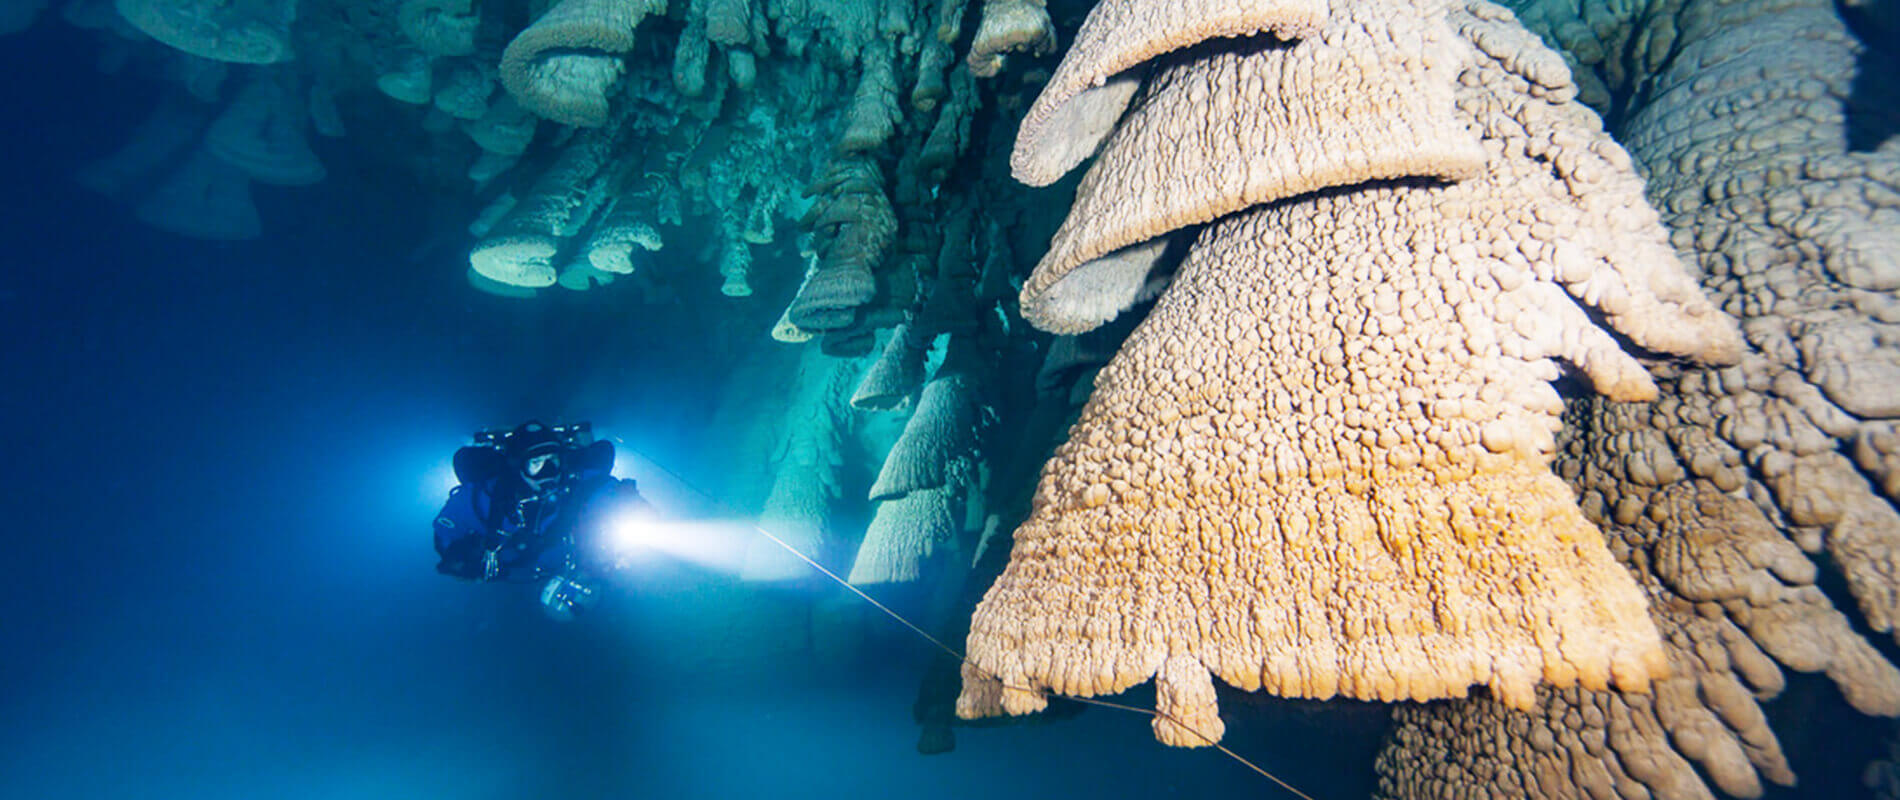 Hell's Bells, the Mysterious Underwater Stalactites